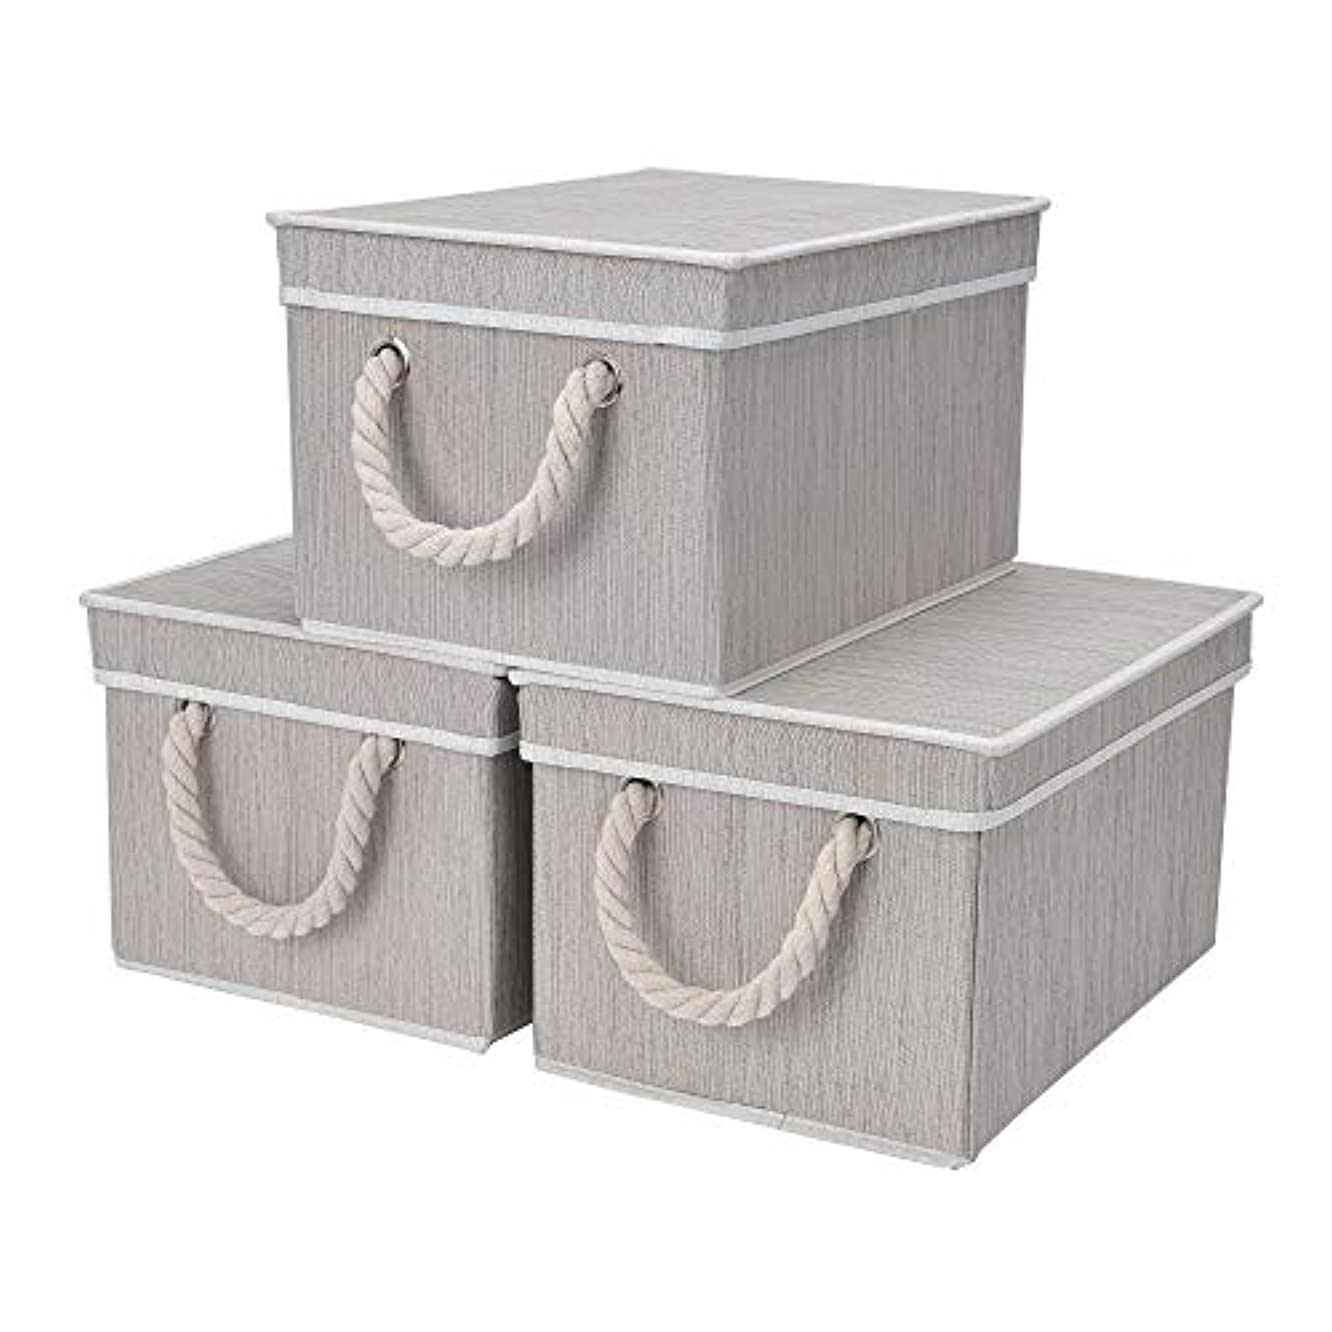 StorageWorks Storage Bins for Shelves, Storage Baskets with Lid and Cotton Rope Handles, Mixture Gray, Bamboo Fabric, Large, 3-Pack